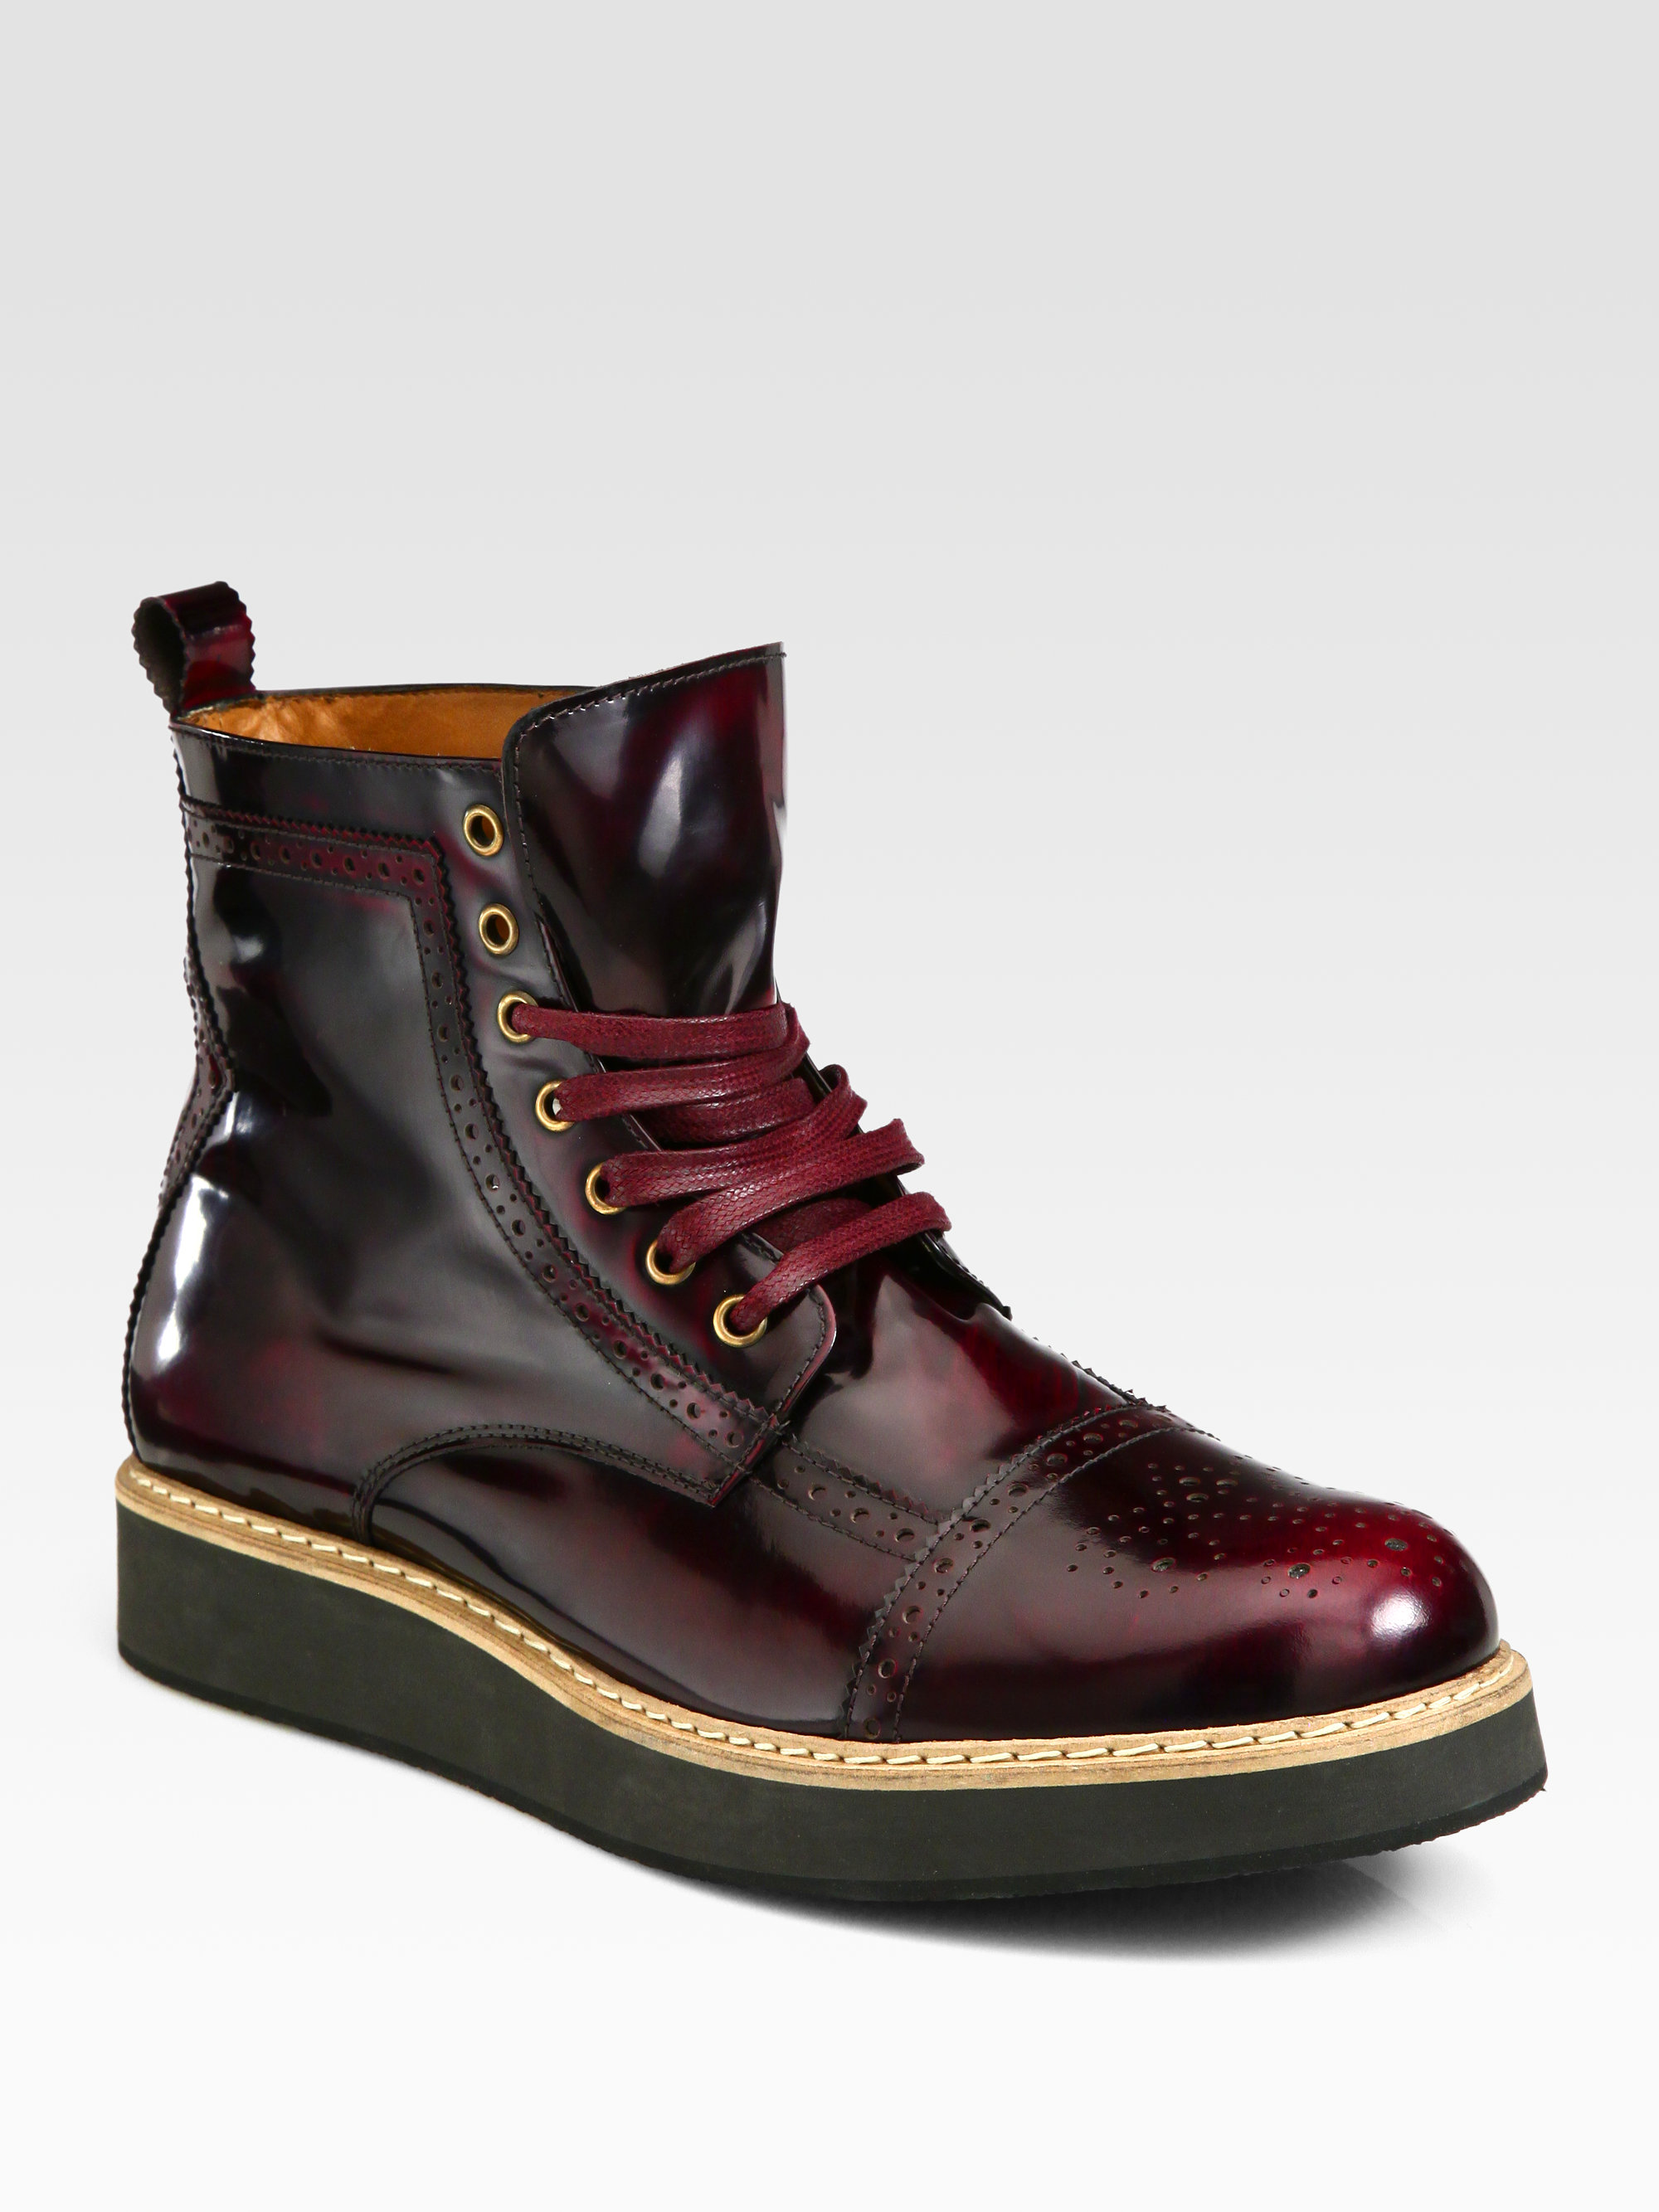 Mcq Derby Toe Brogue Boots in Purple for Men - Lyst